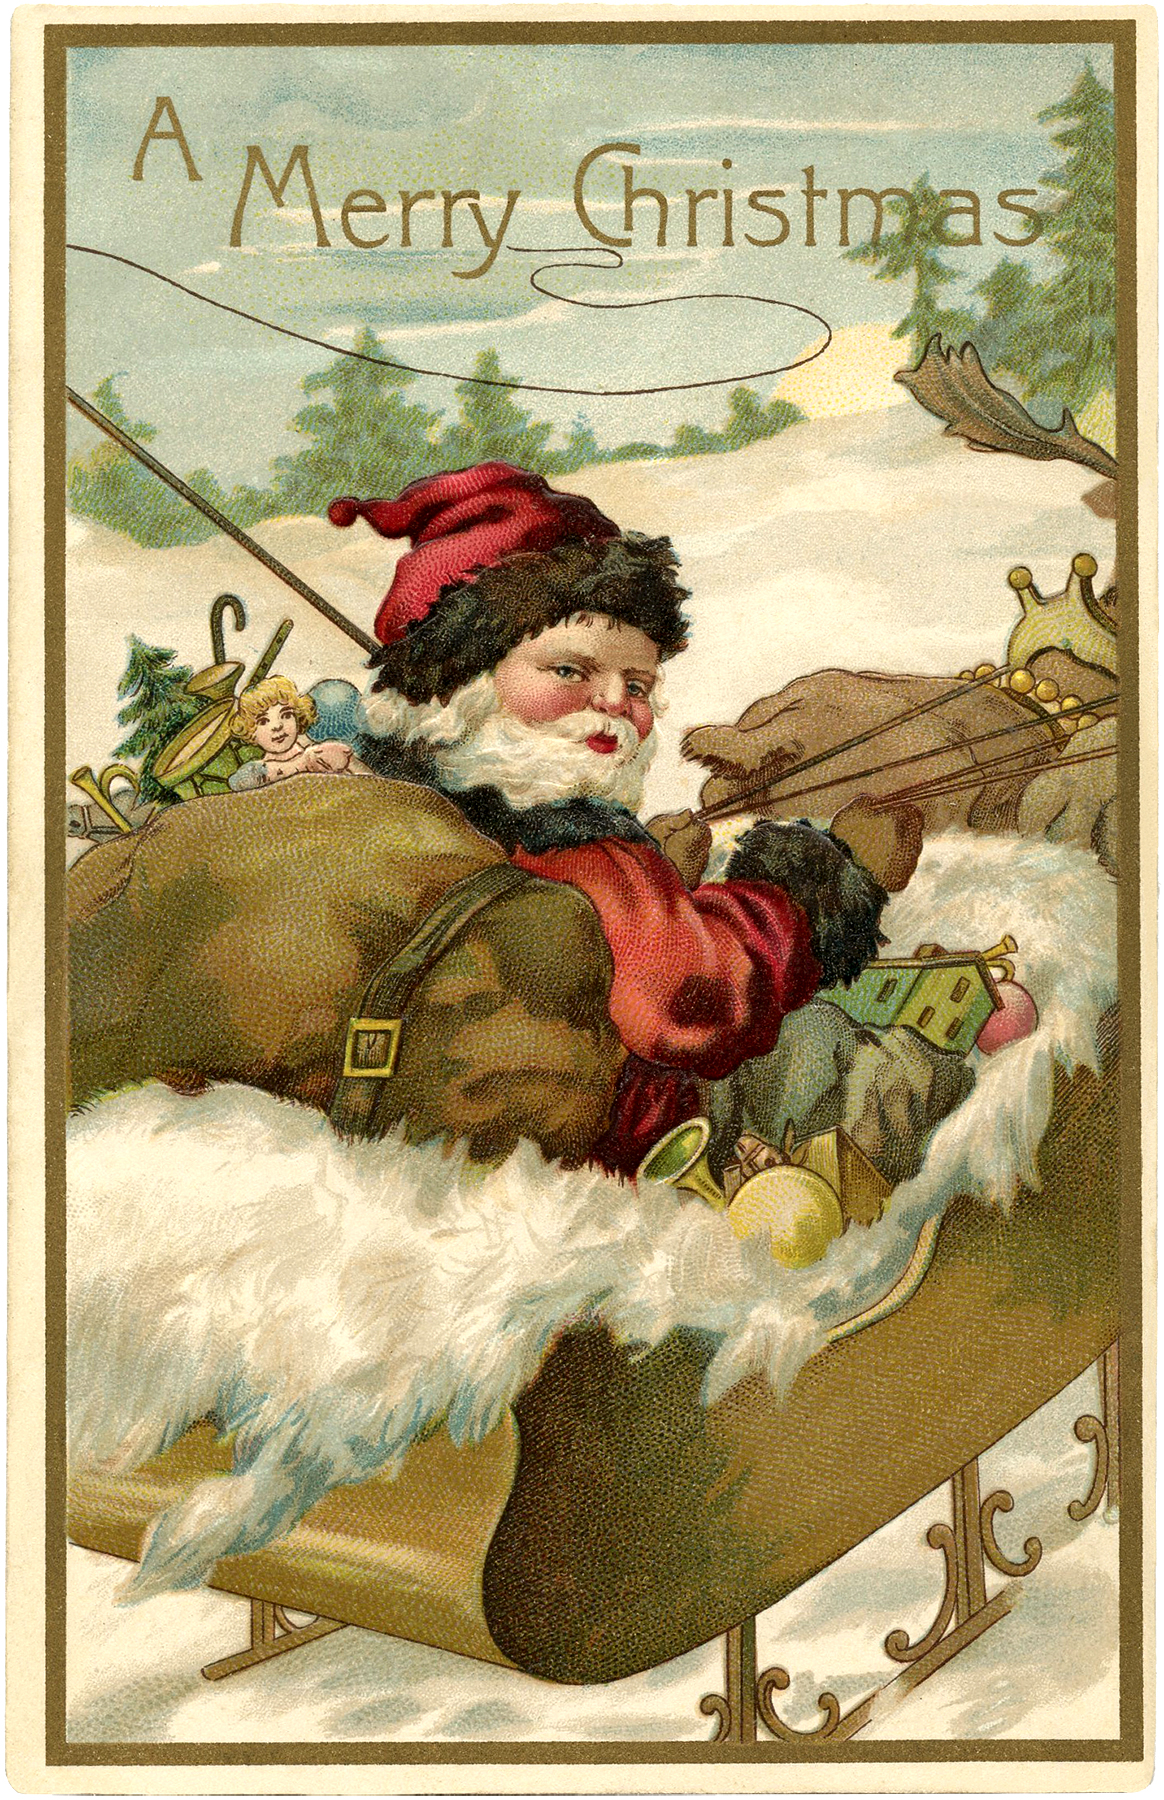 Fantastic Vintage Santa with Sleigh Image! - The Graphics ...